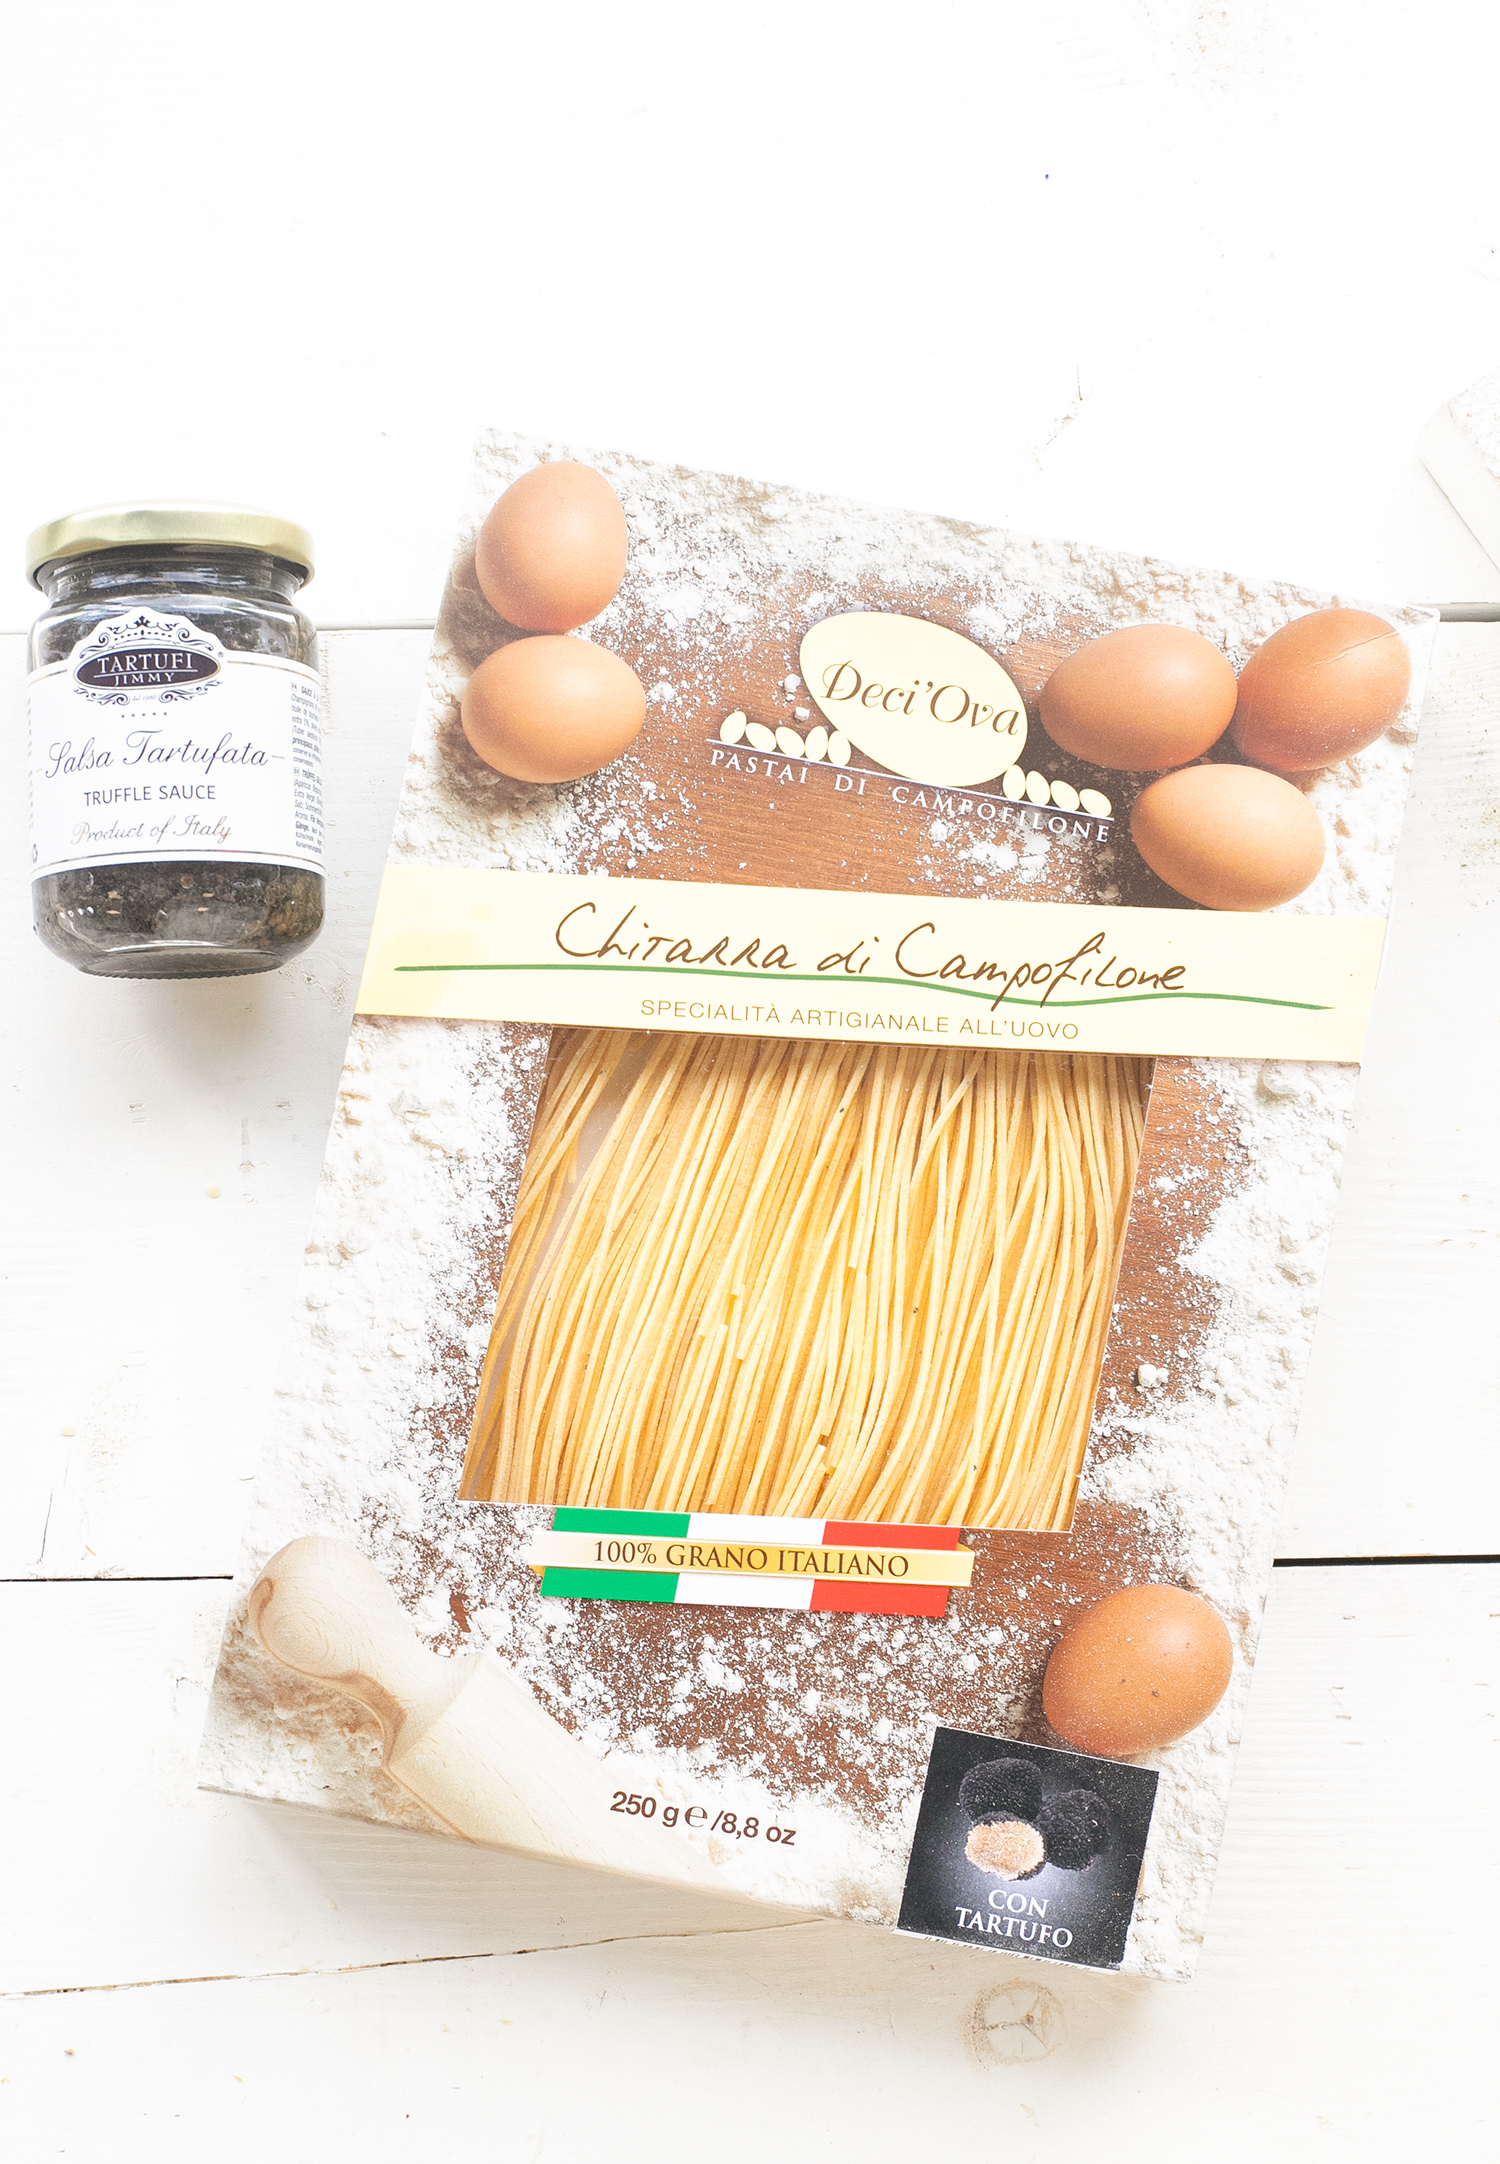 Echte Italiaanse truffel pasta 'The Lemon Kitchen